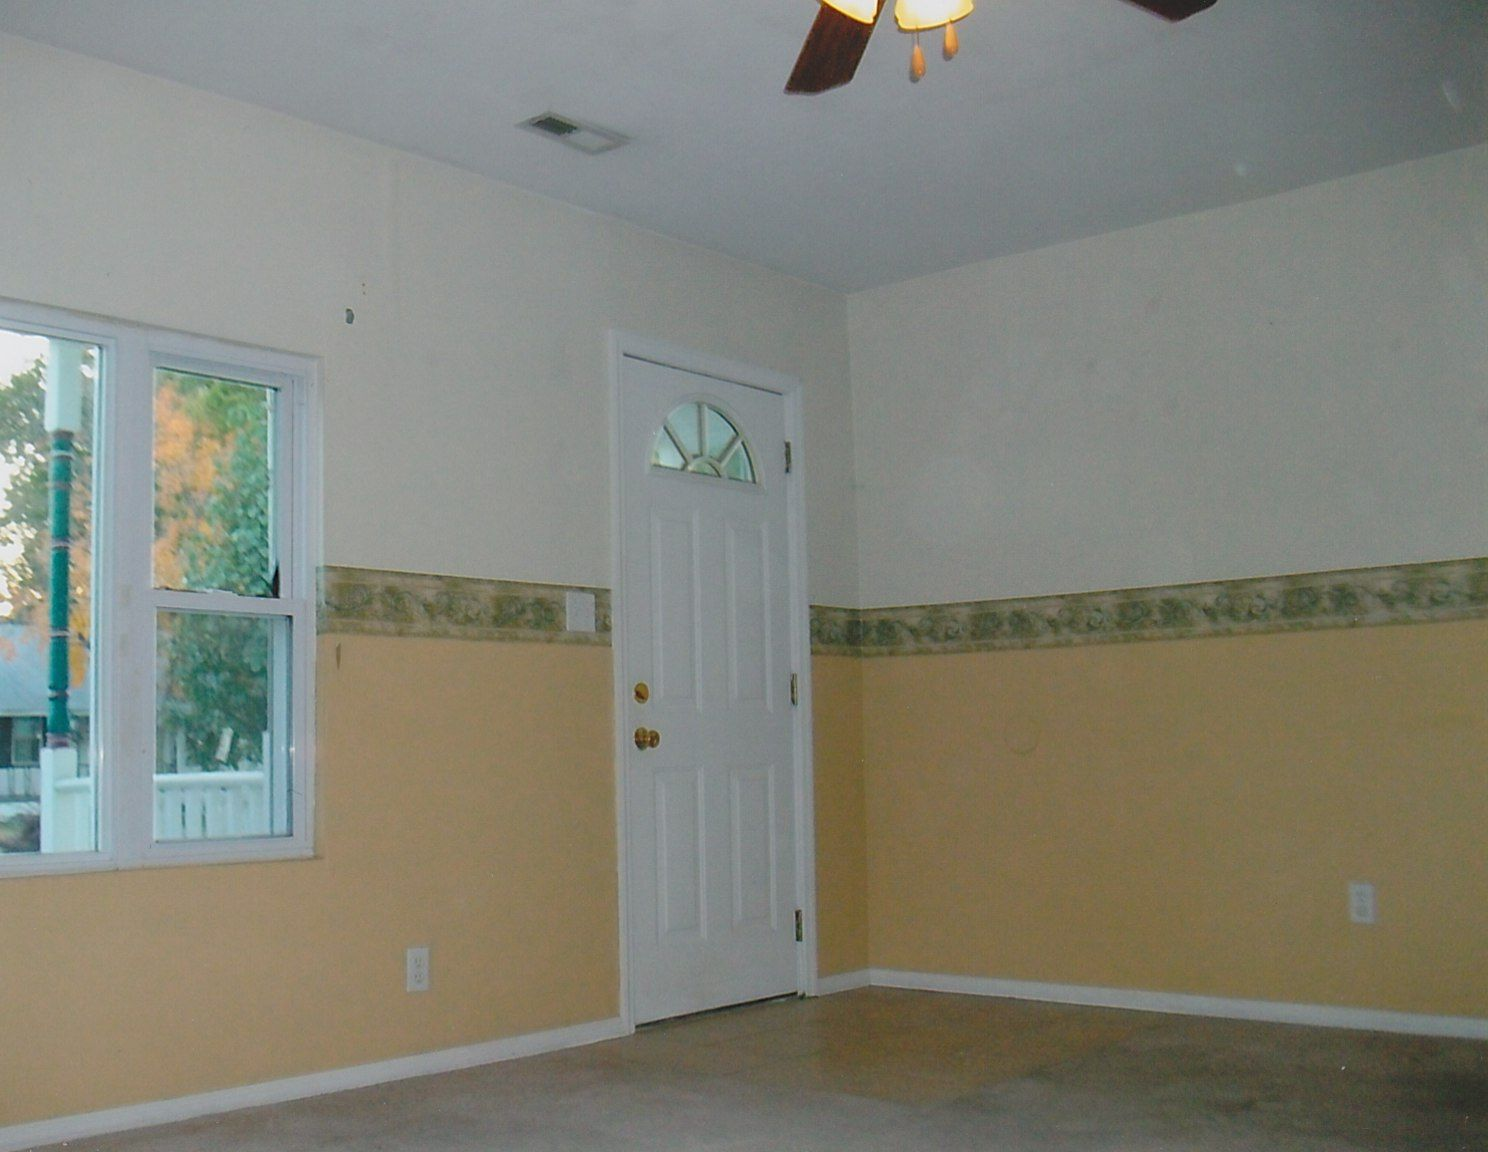 Living Room Border Design Simple Elegant Ideas Borders In Paint Wall Covering Supplies Compare